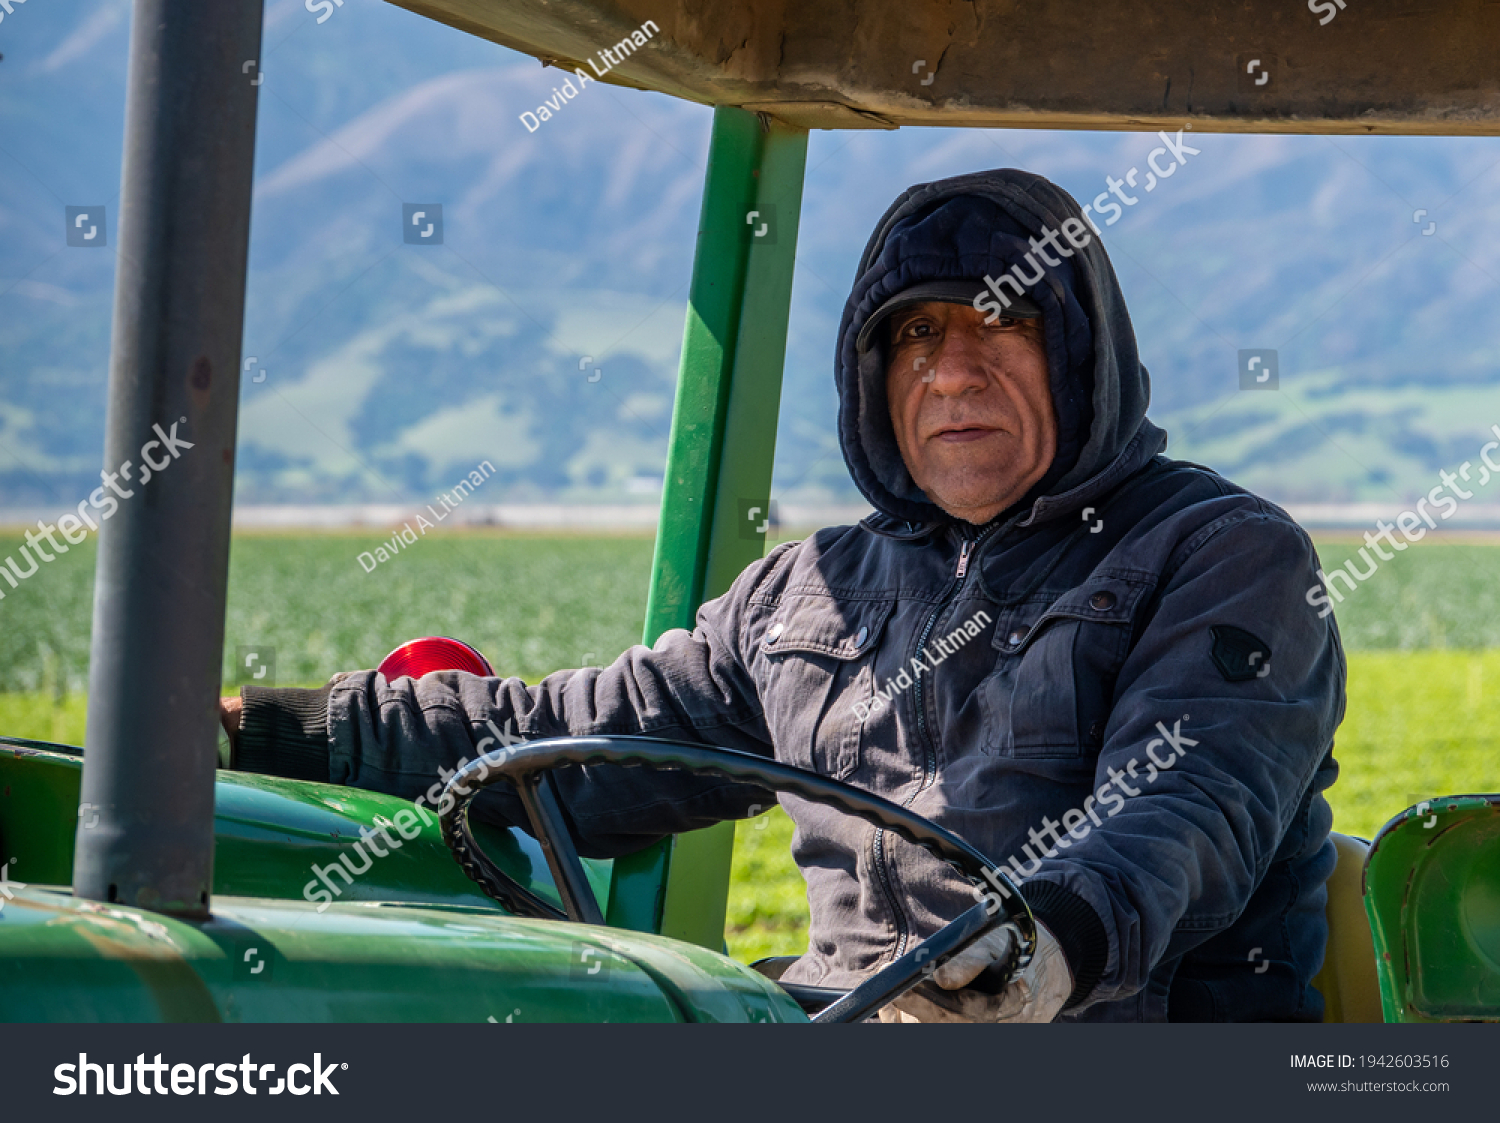 Salinas, California - March 22, 2021: A tractor operator (driver) works the agricultural fields of the Salinas Valley of central California.